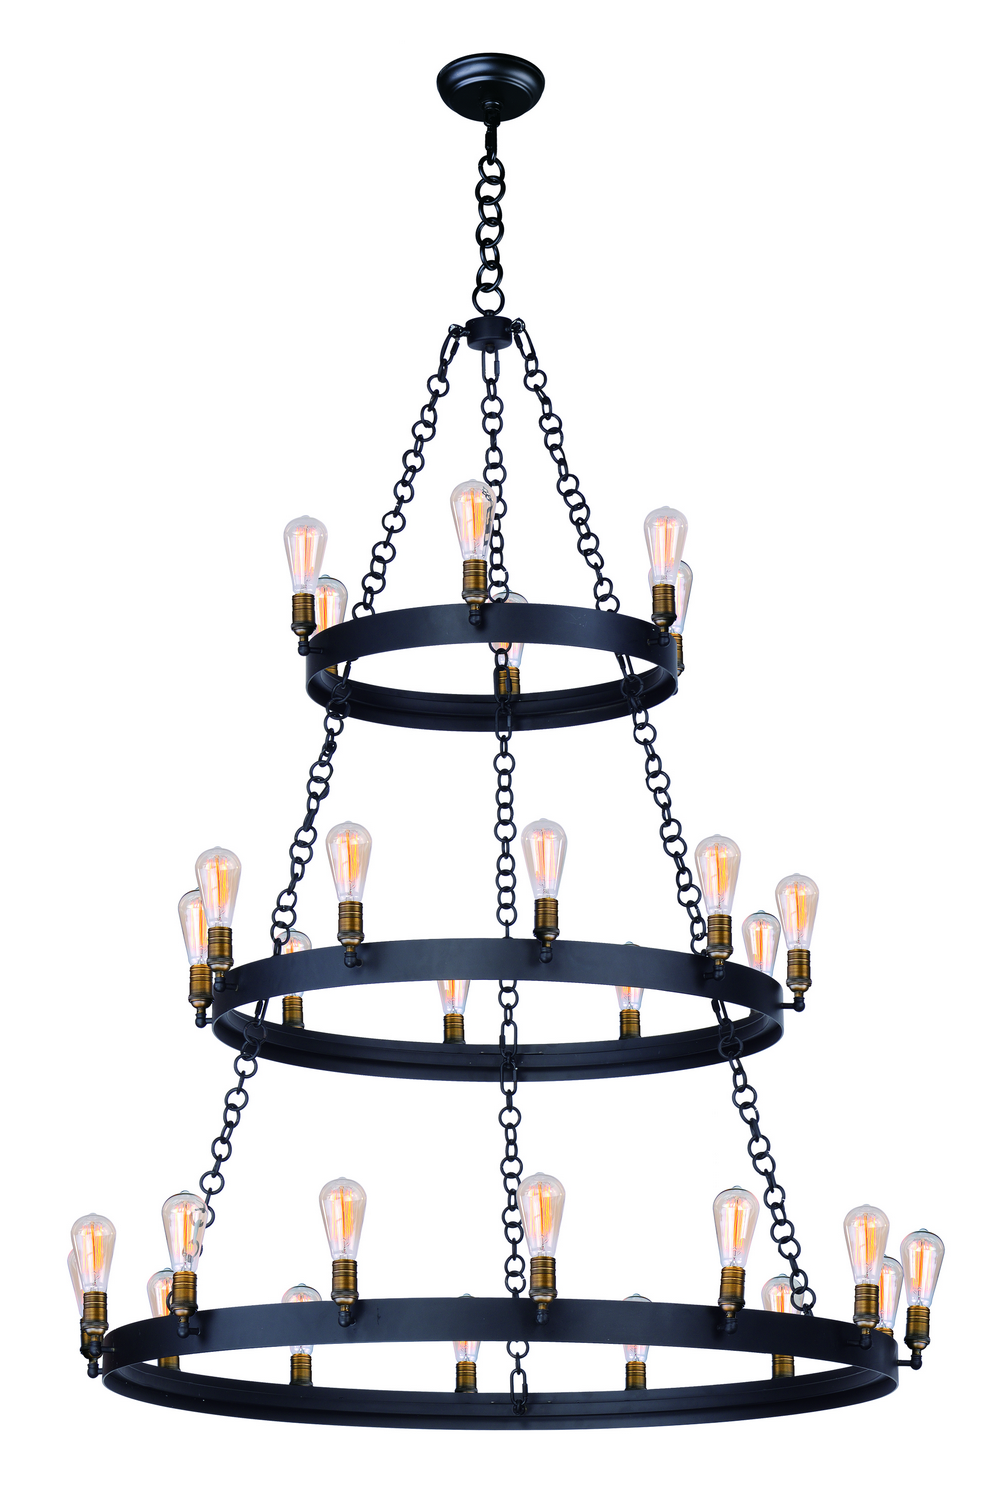 30 Light Chandelier from the Noble collection by Maxim 26278BKNAB